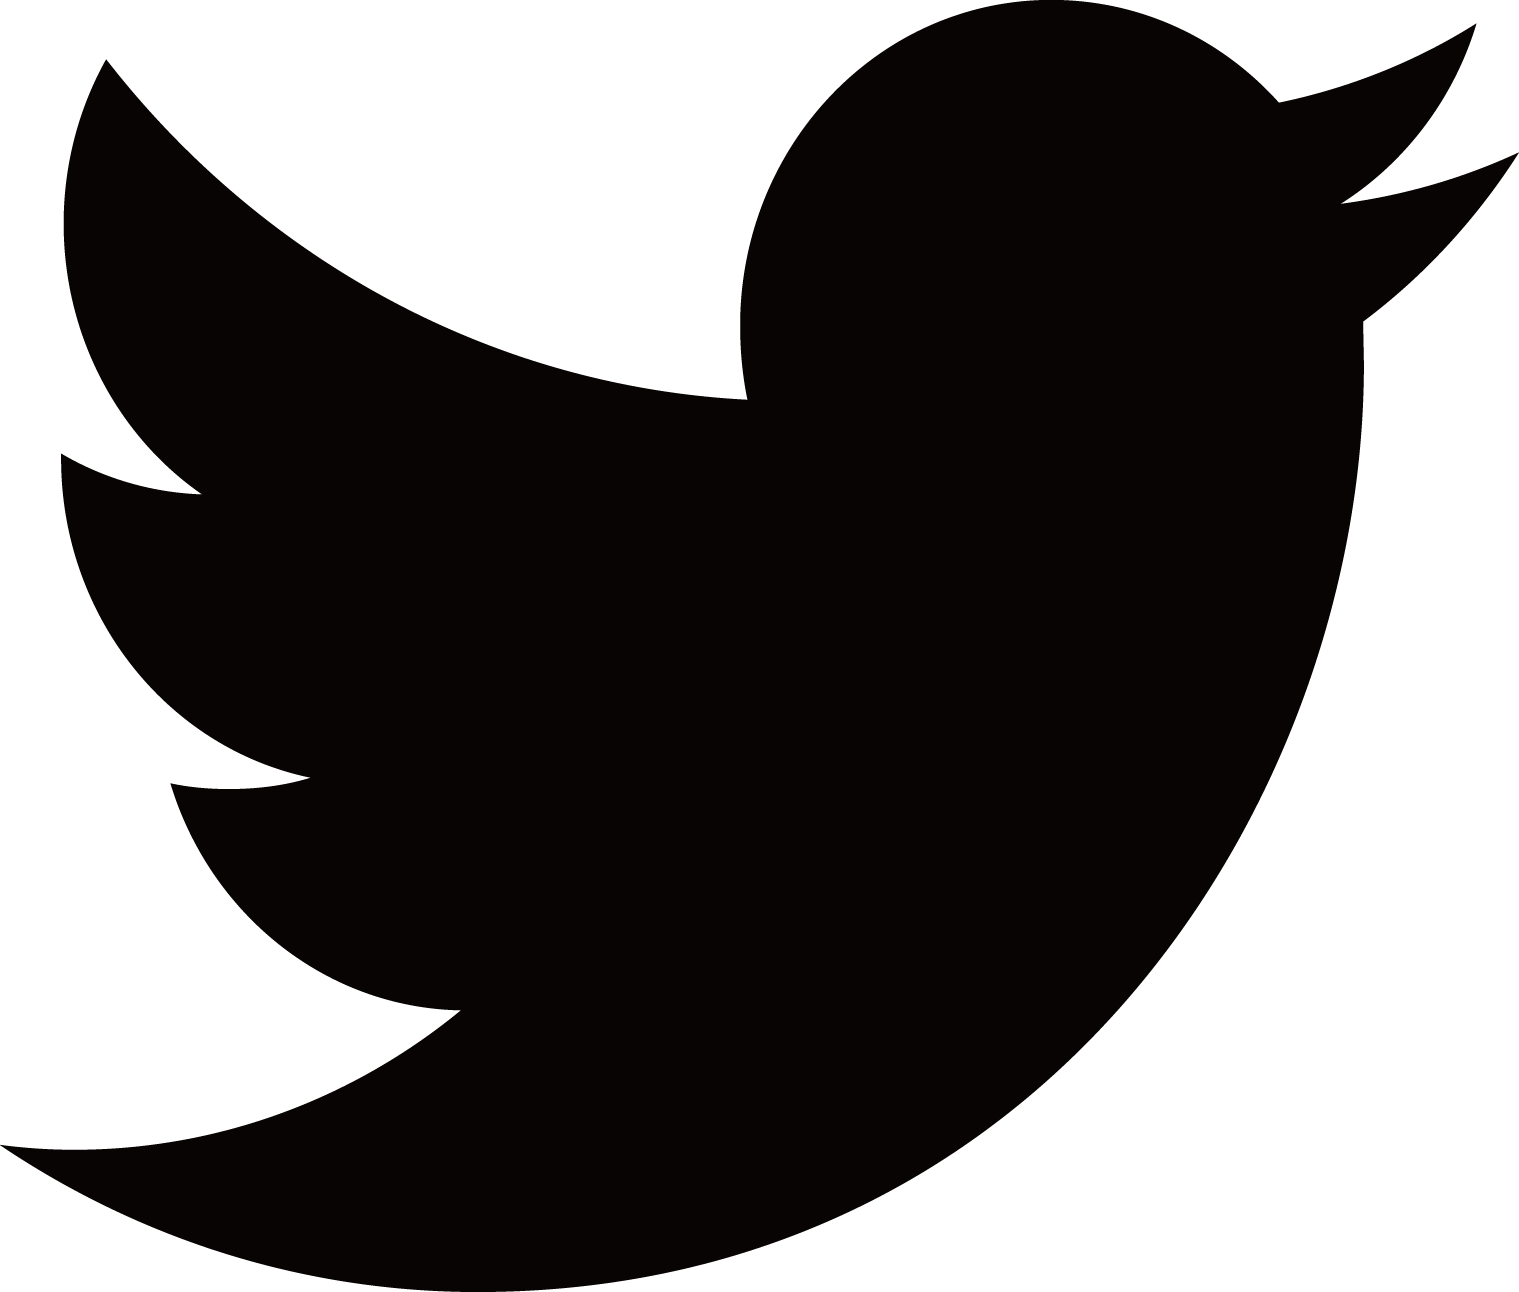 Twitter Computer Black Icons Free Frame PNG Image